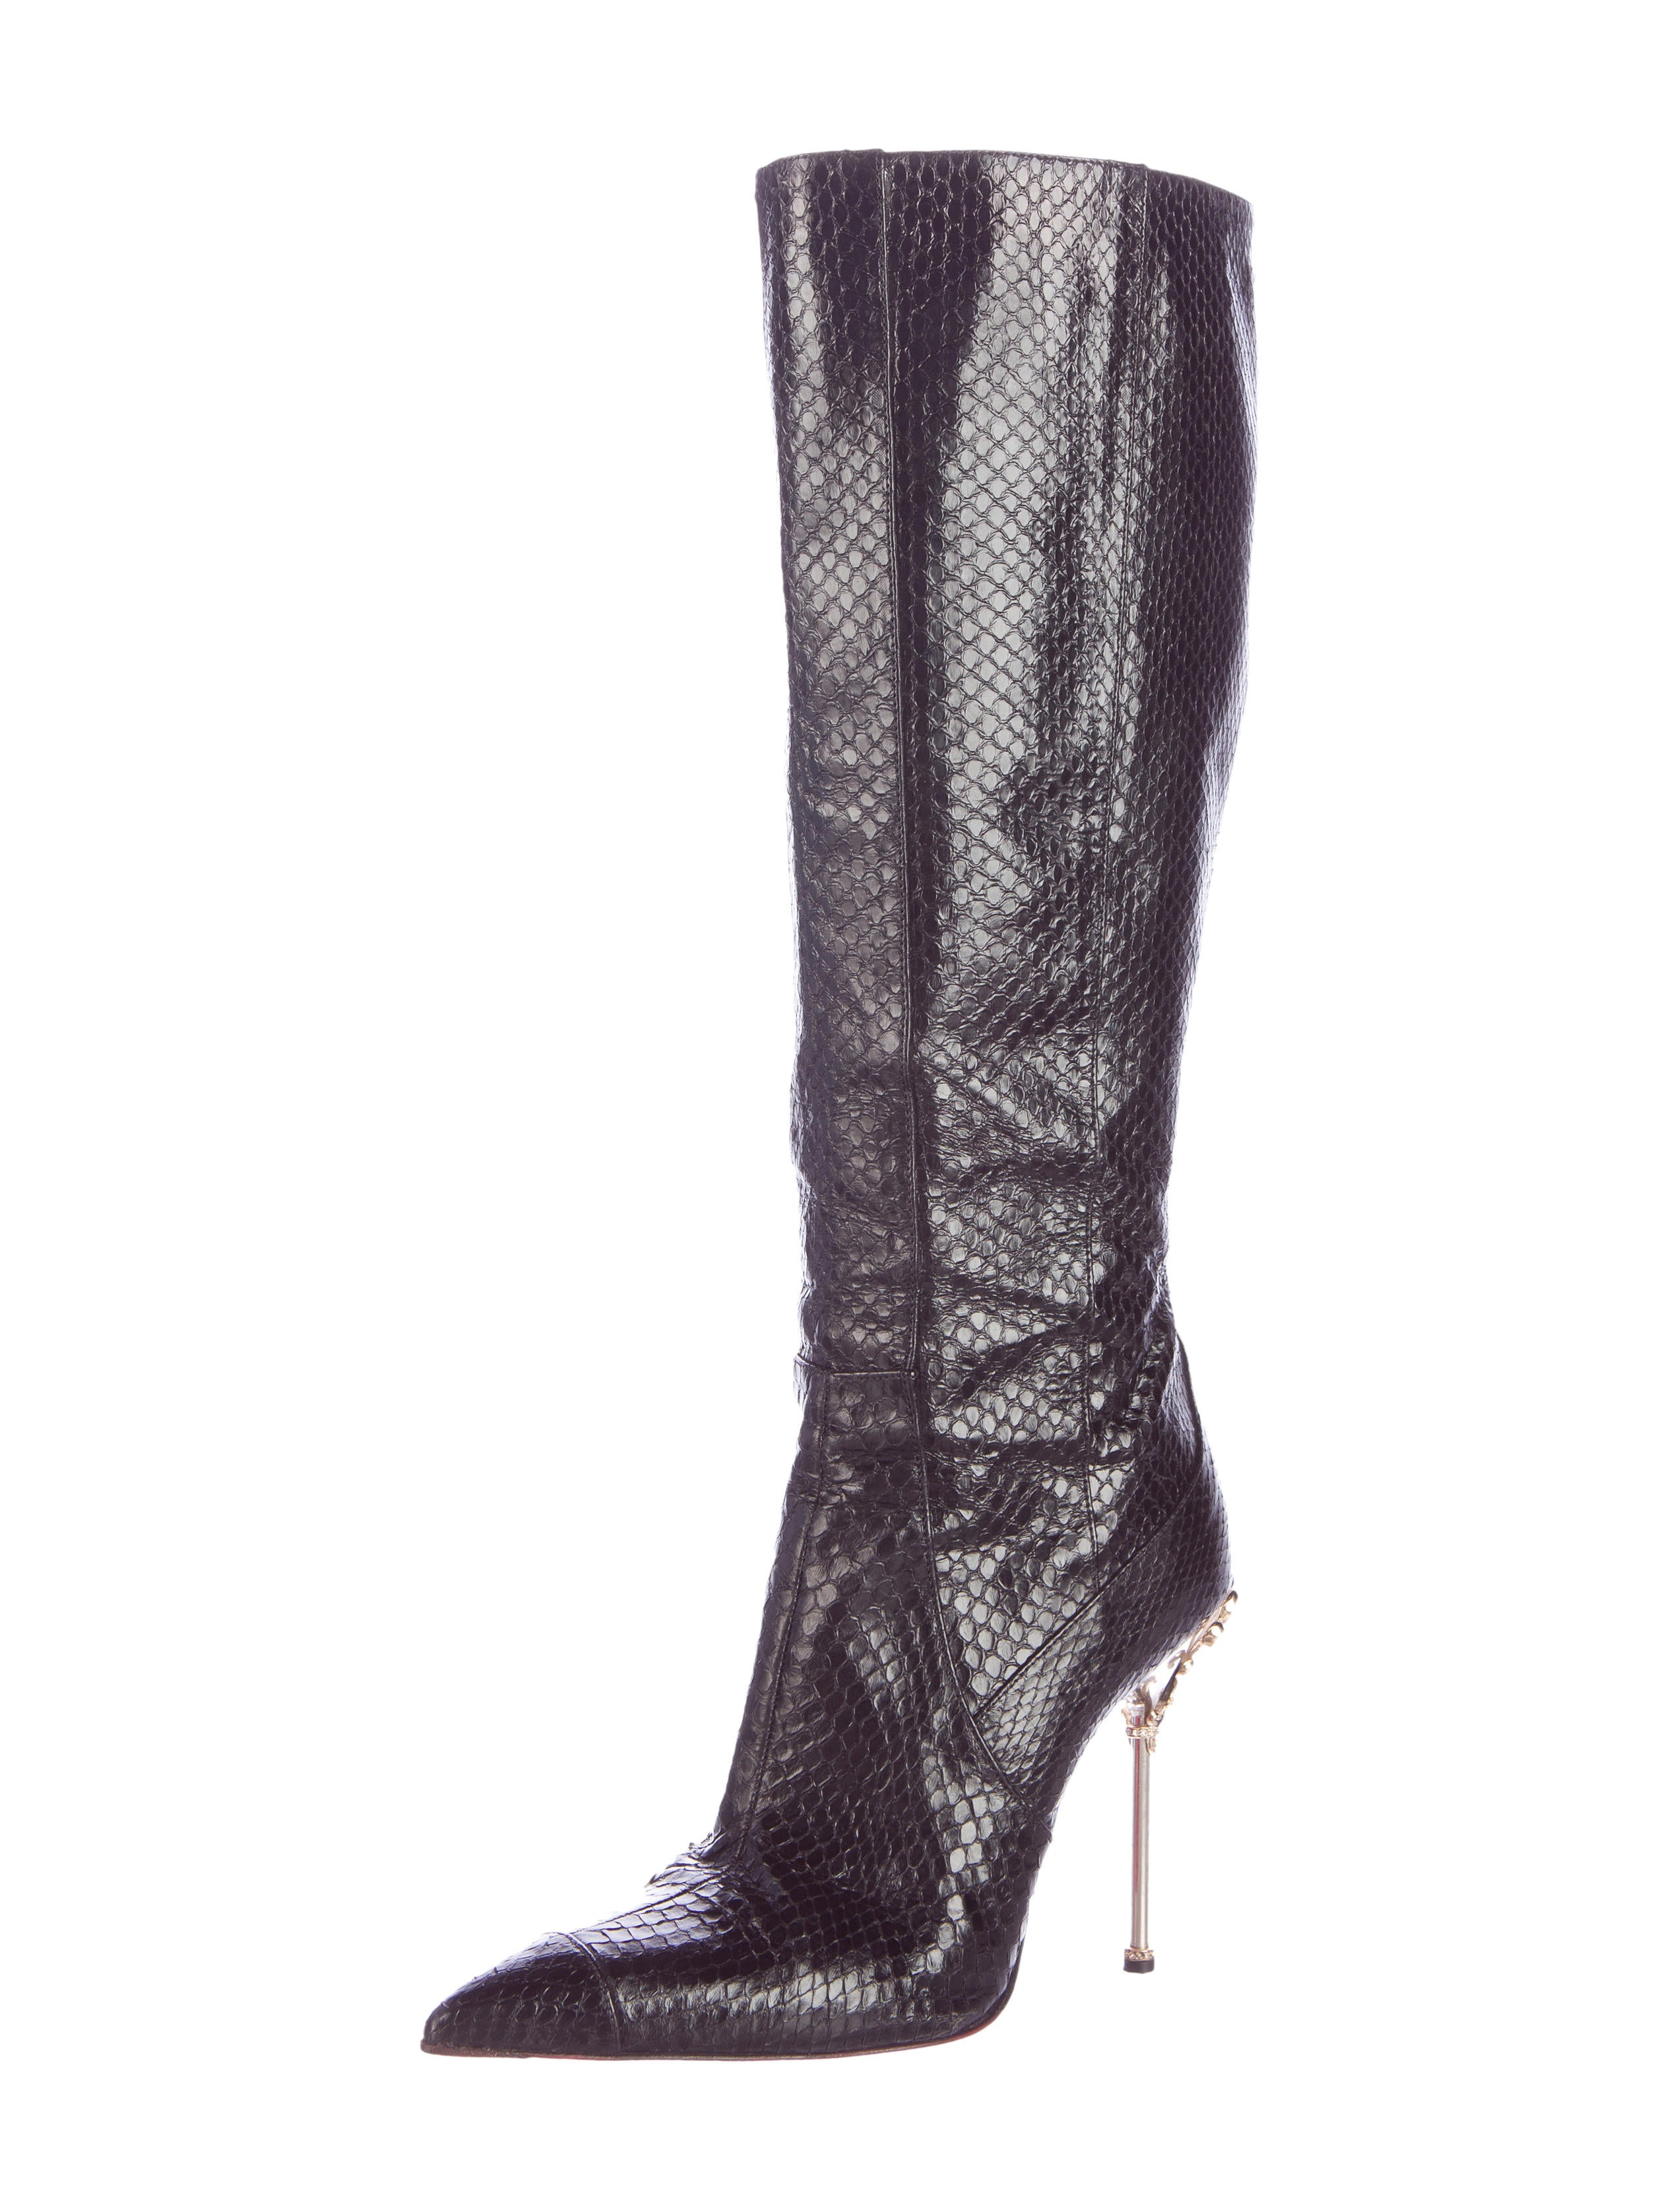 outlet 2015 sale collections Cesare Paciotti Snakeskin Pointed-Toe Booties cheap 2014 new discount recommend DdMVZl